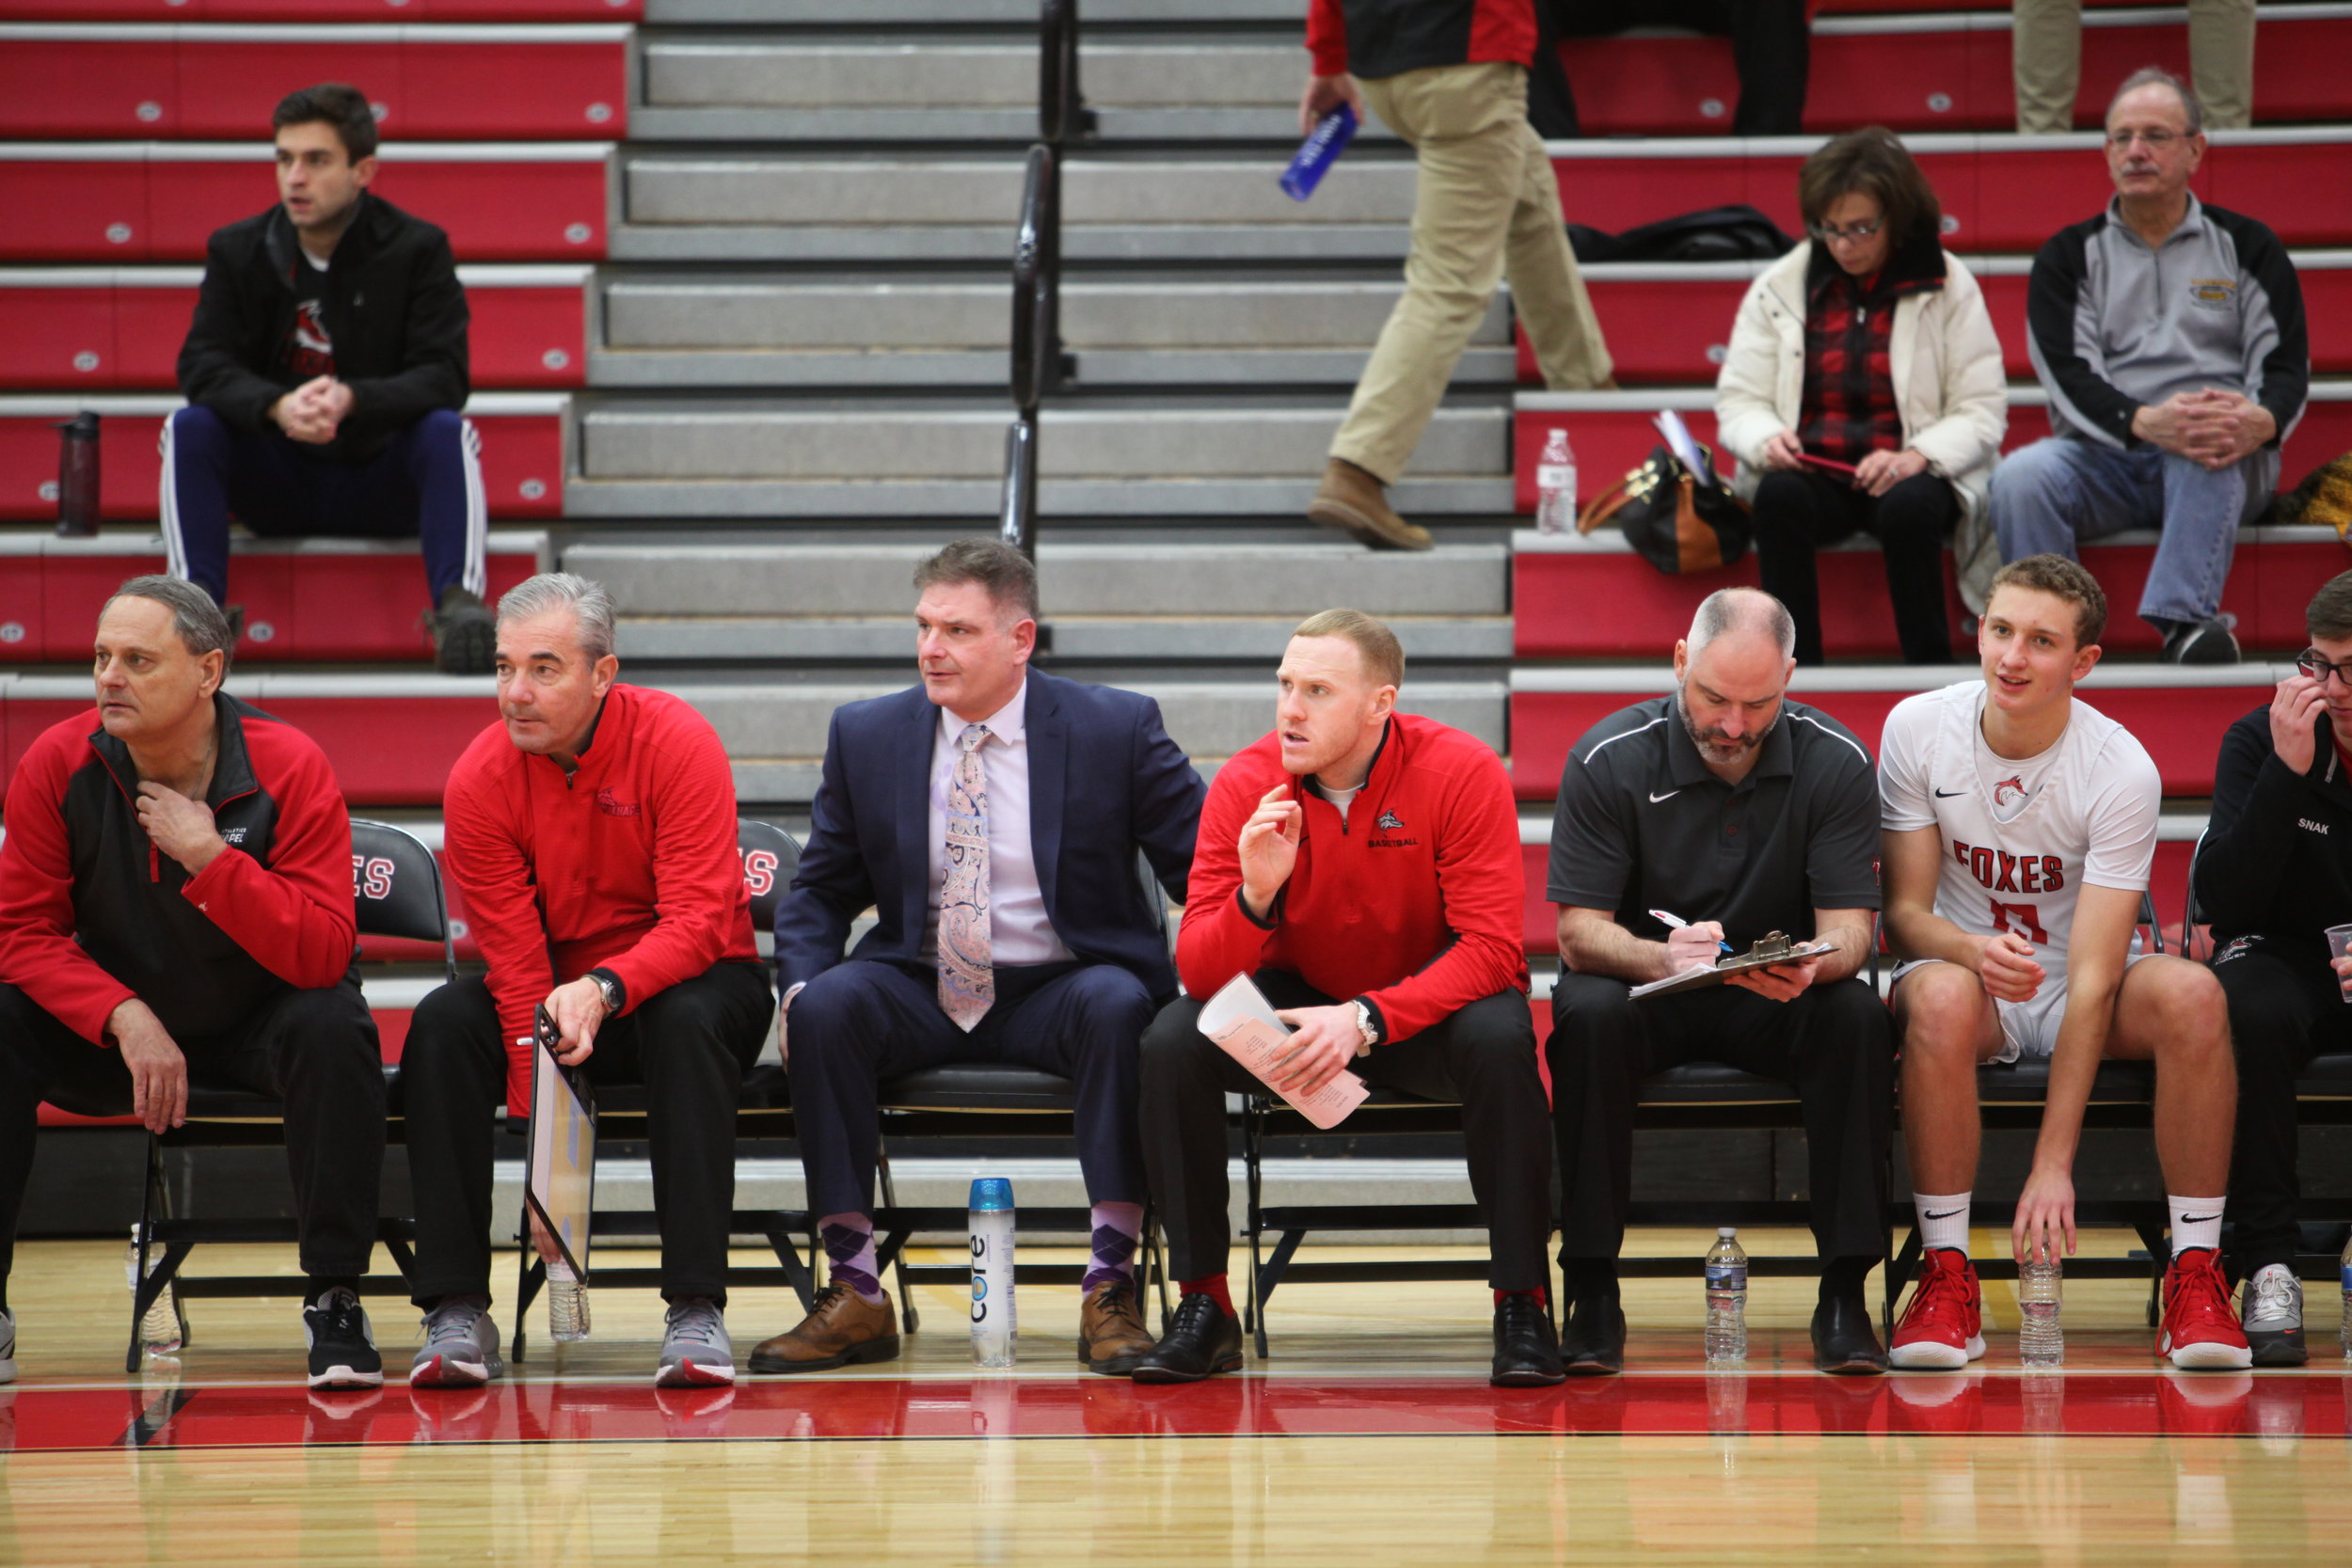 Gabe Skrinjar (second from right) tallies stats as the other members of the coaching staff remain engaged in the game in other ways.